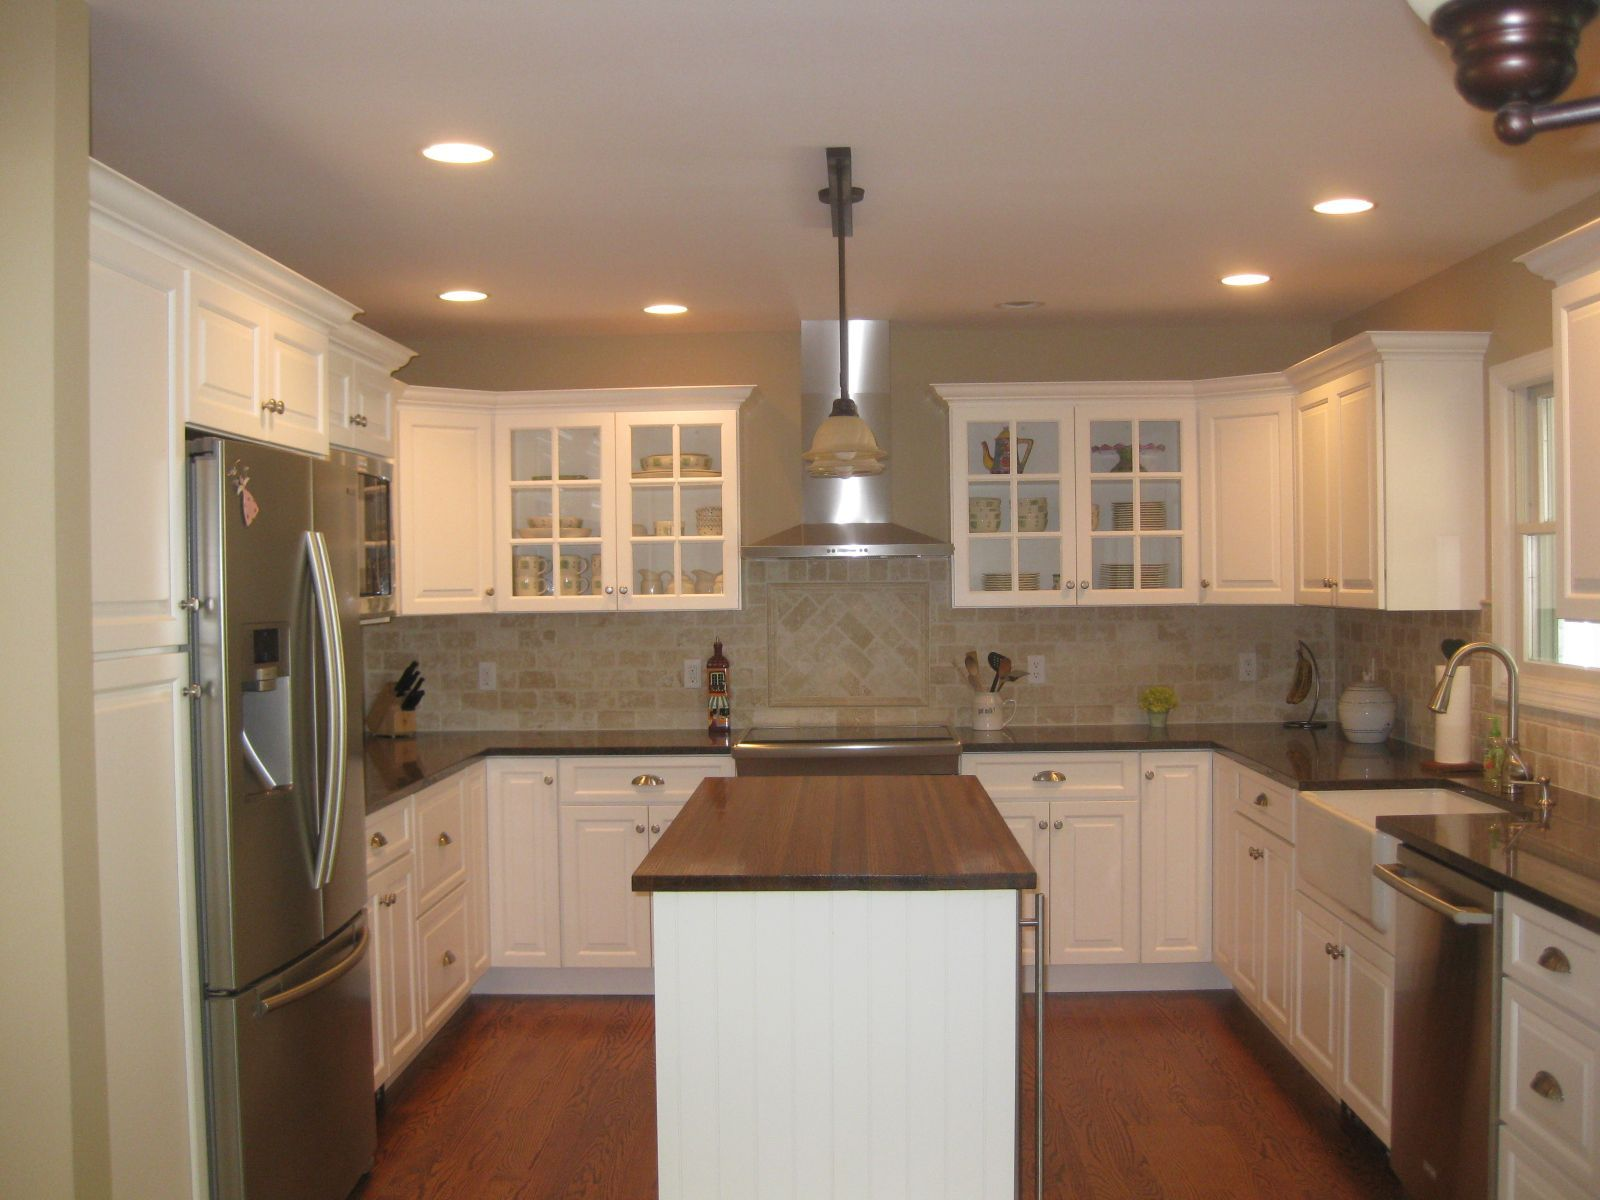 U Shaped Kitchens Pictures Examples Advantages And Disadvantages U Shaped Kitchen Layout With Is Kitchen Layout Kitchen Remodel Cost Kitchen Layout U Shaped